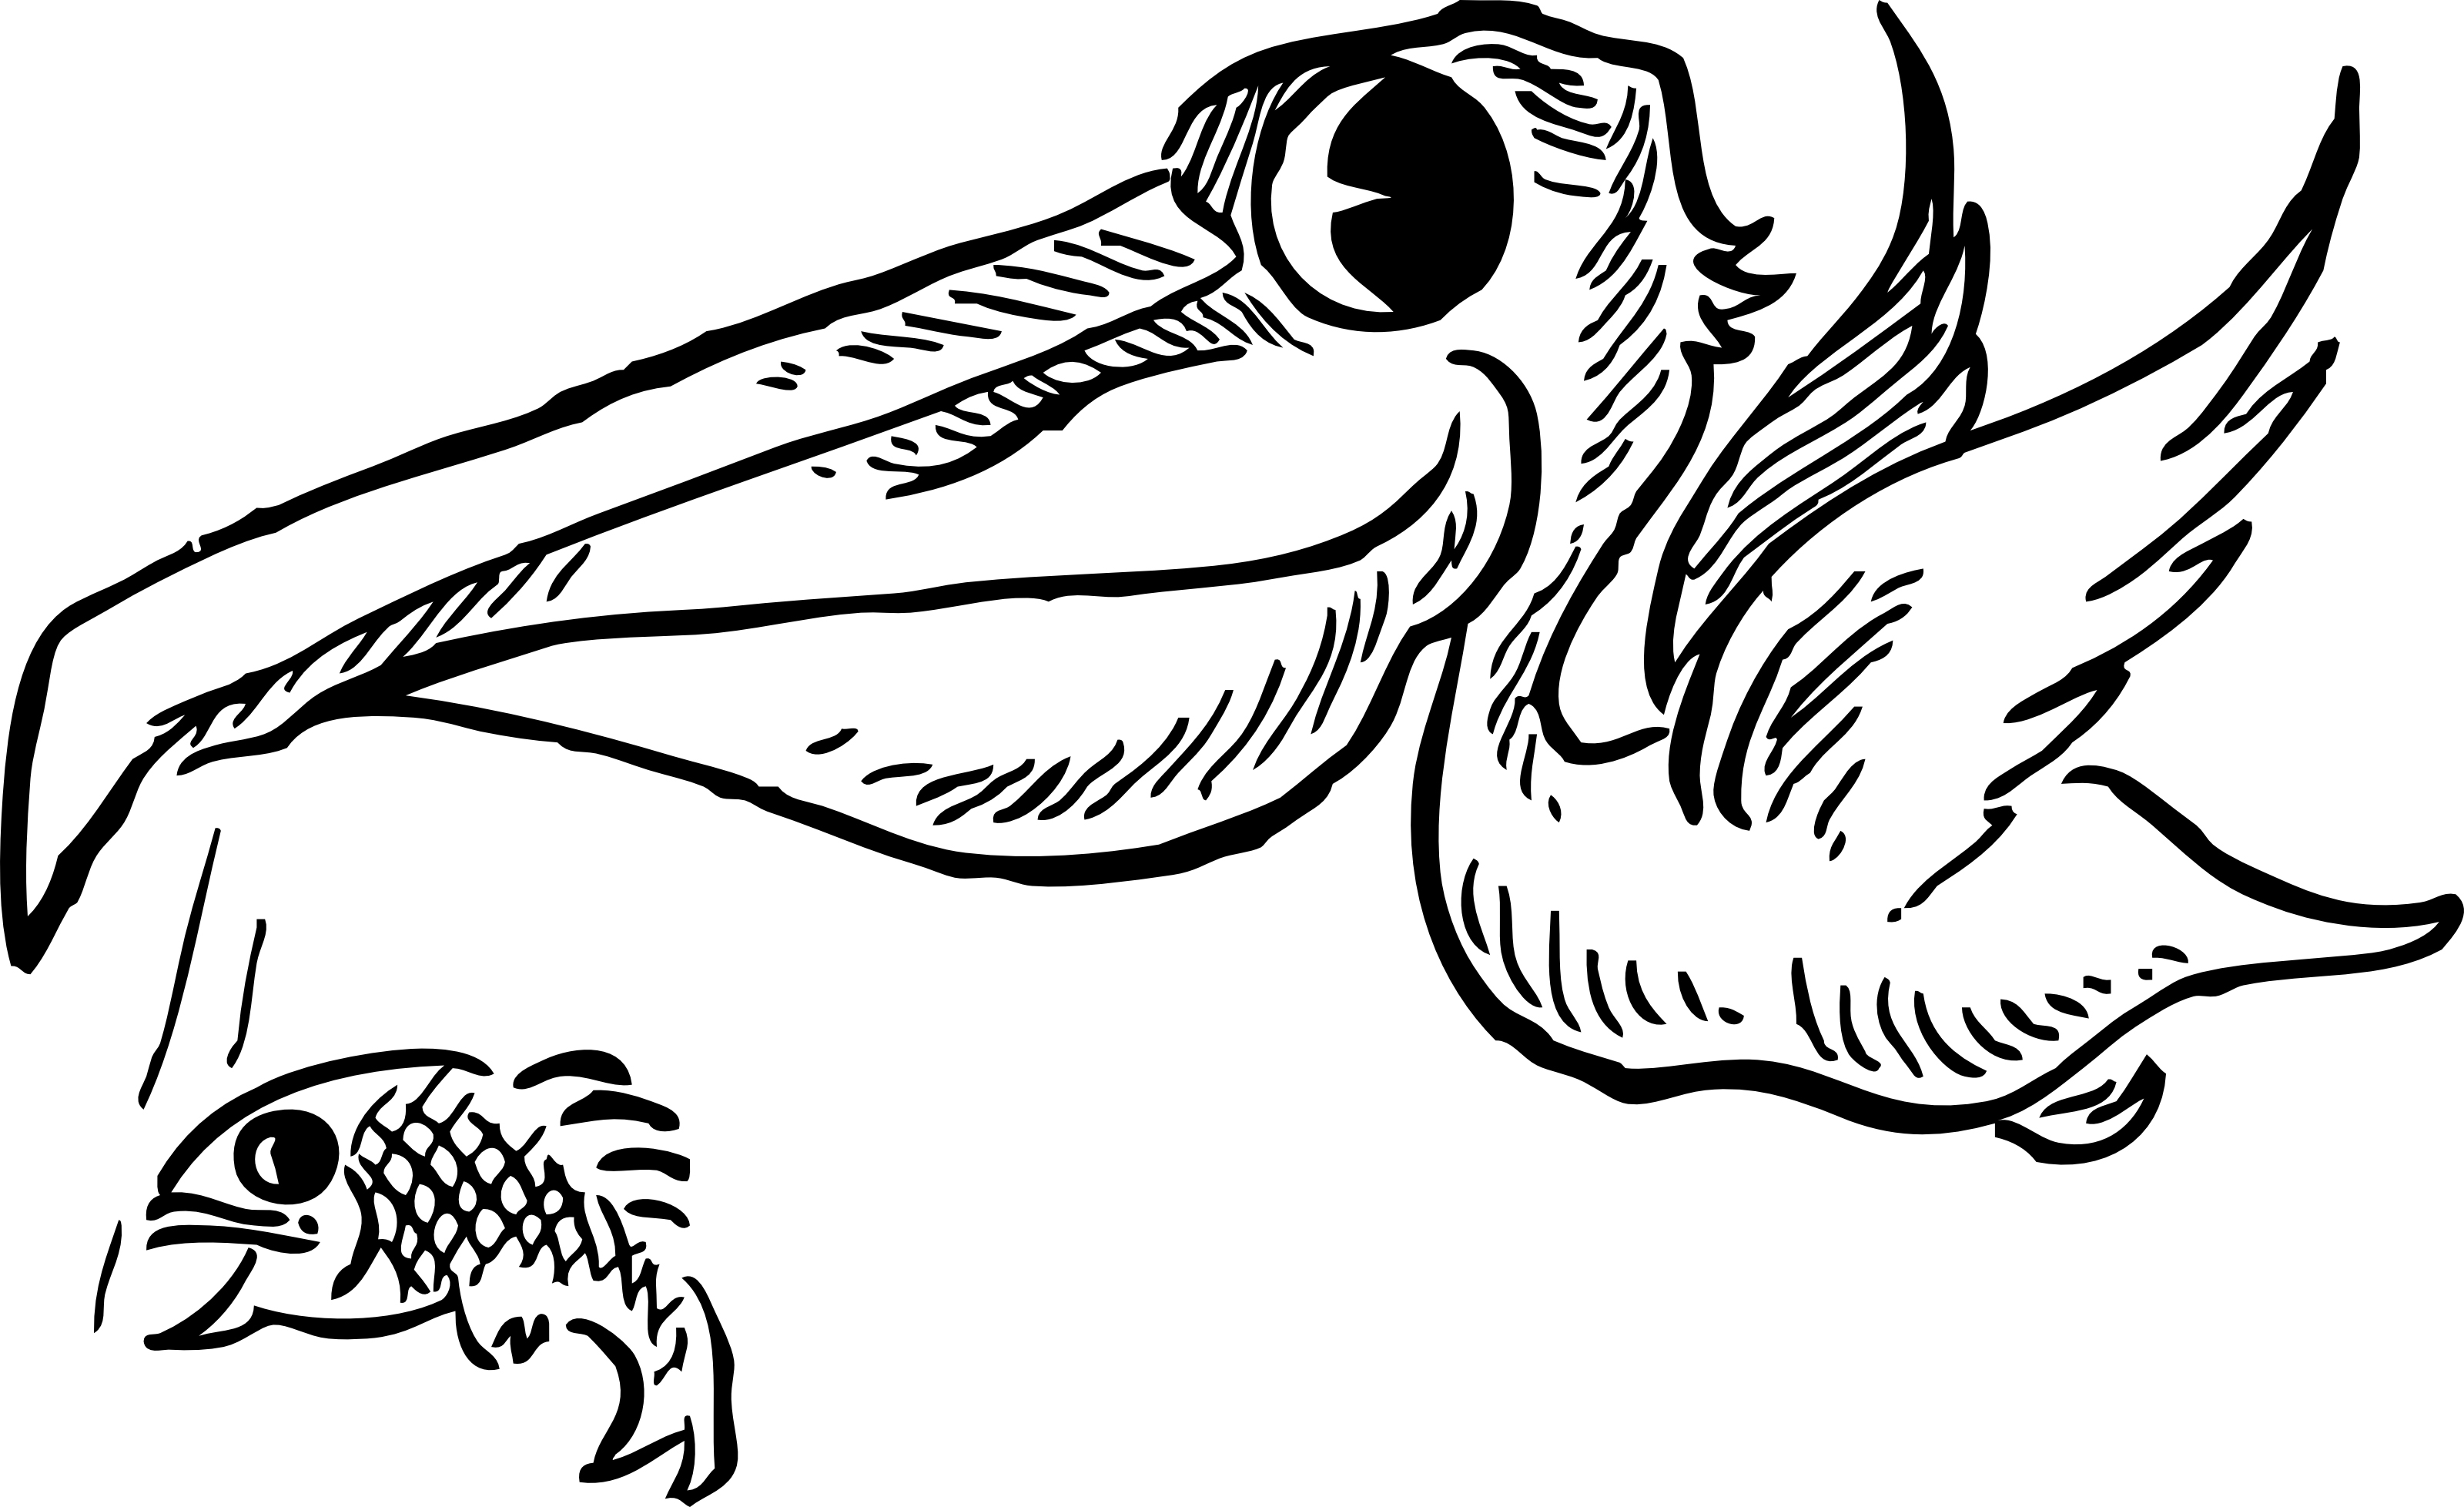 Retro Clipart Illustration Of A White Pelican Catching Fish.